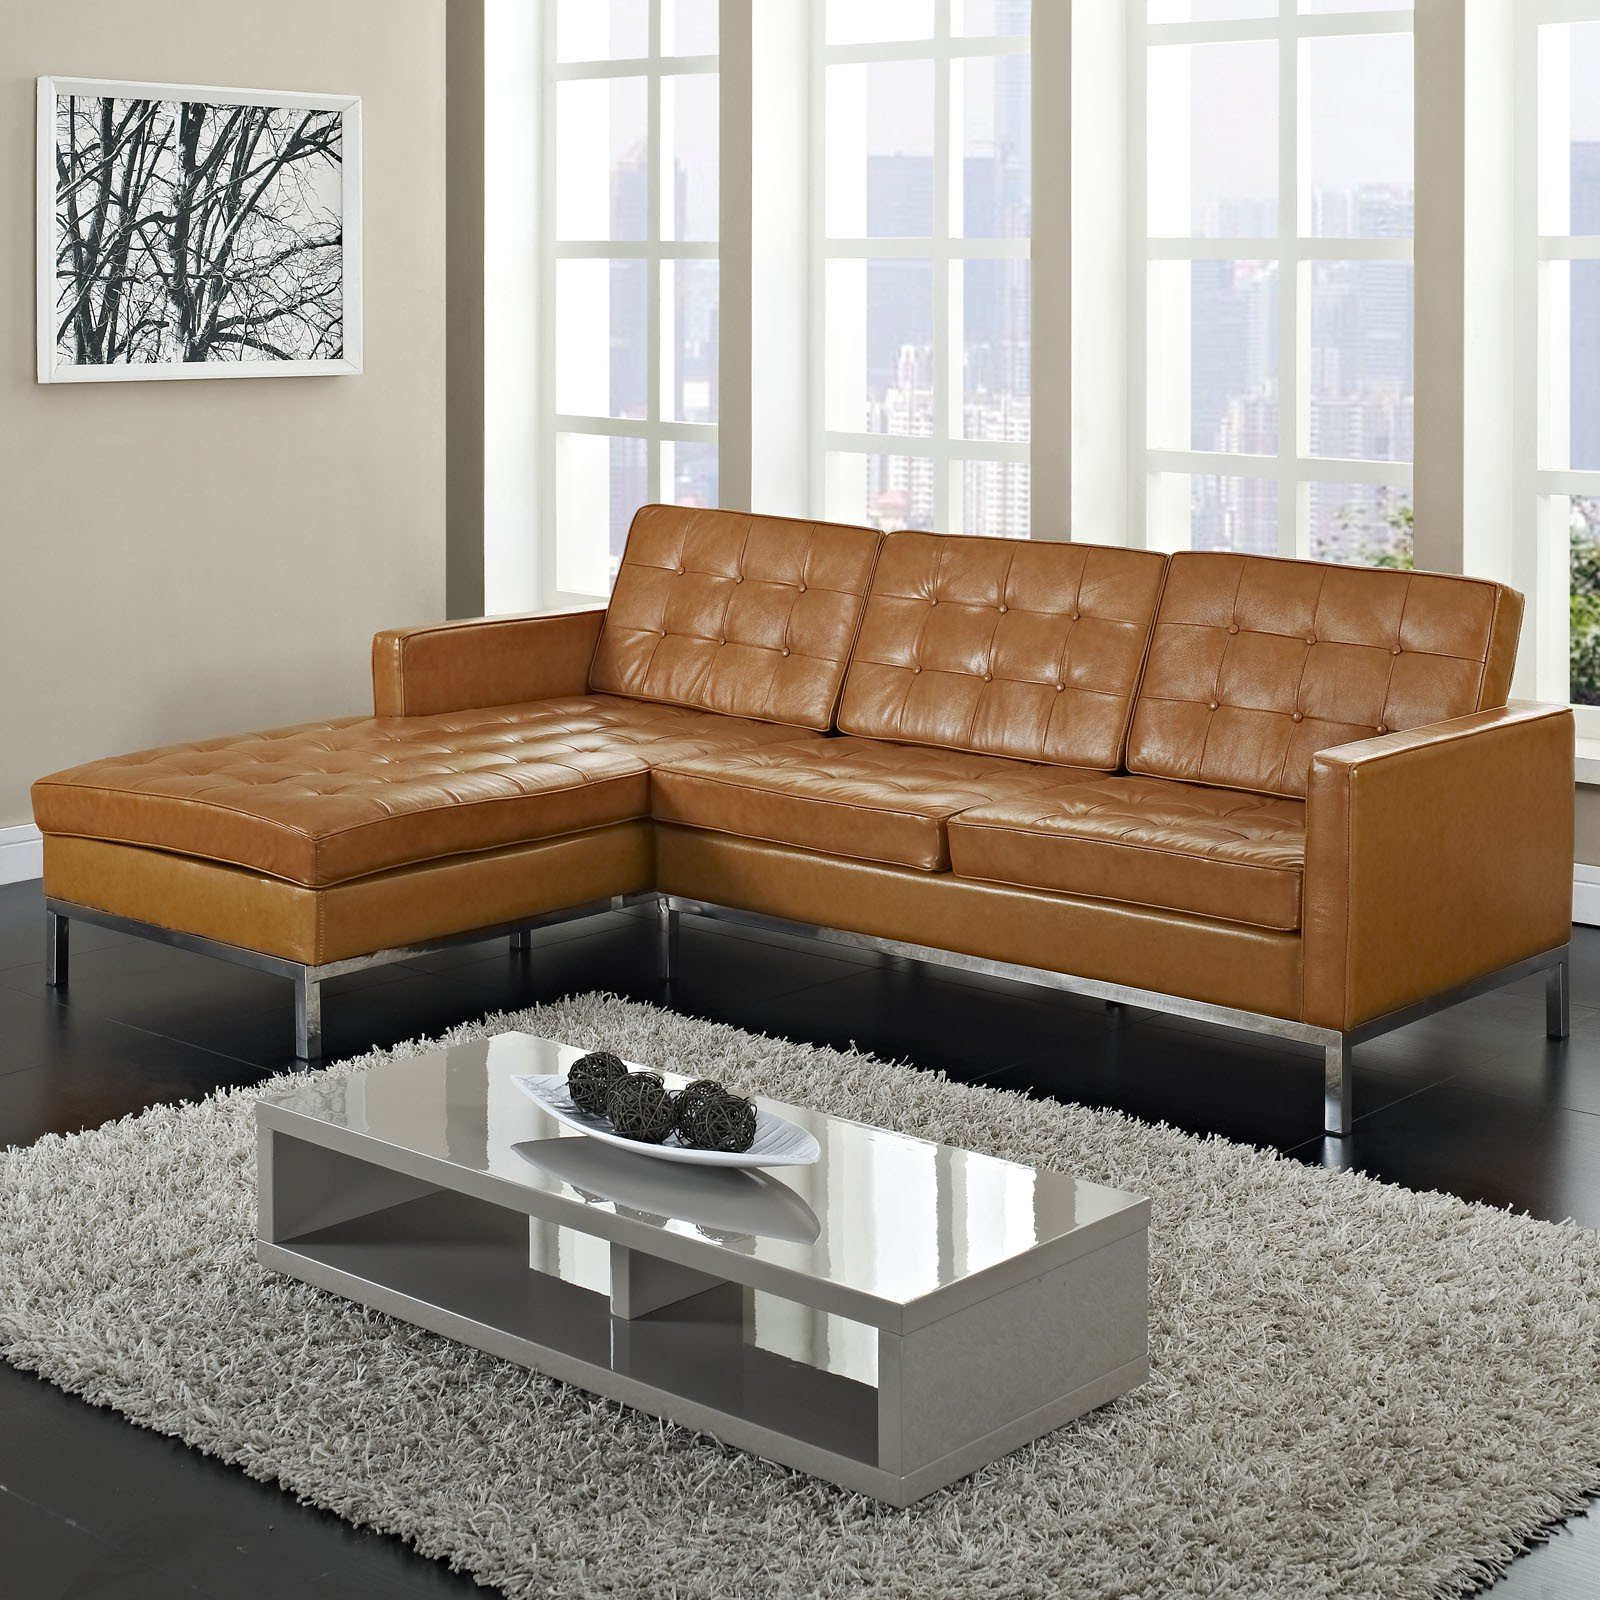 Simple Review About Living Room Furniture: Small Sectional Throughout Well Known Easton Small Space Sectional Futon Sofas (View 12 of 20)